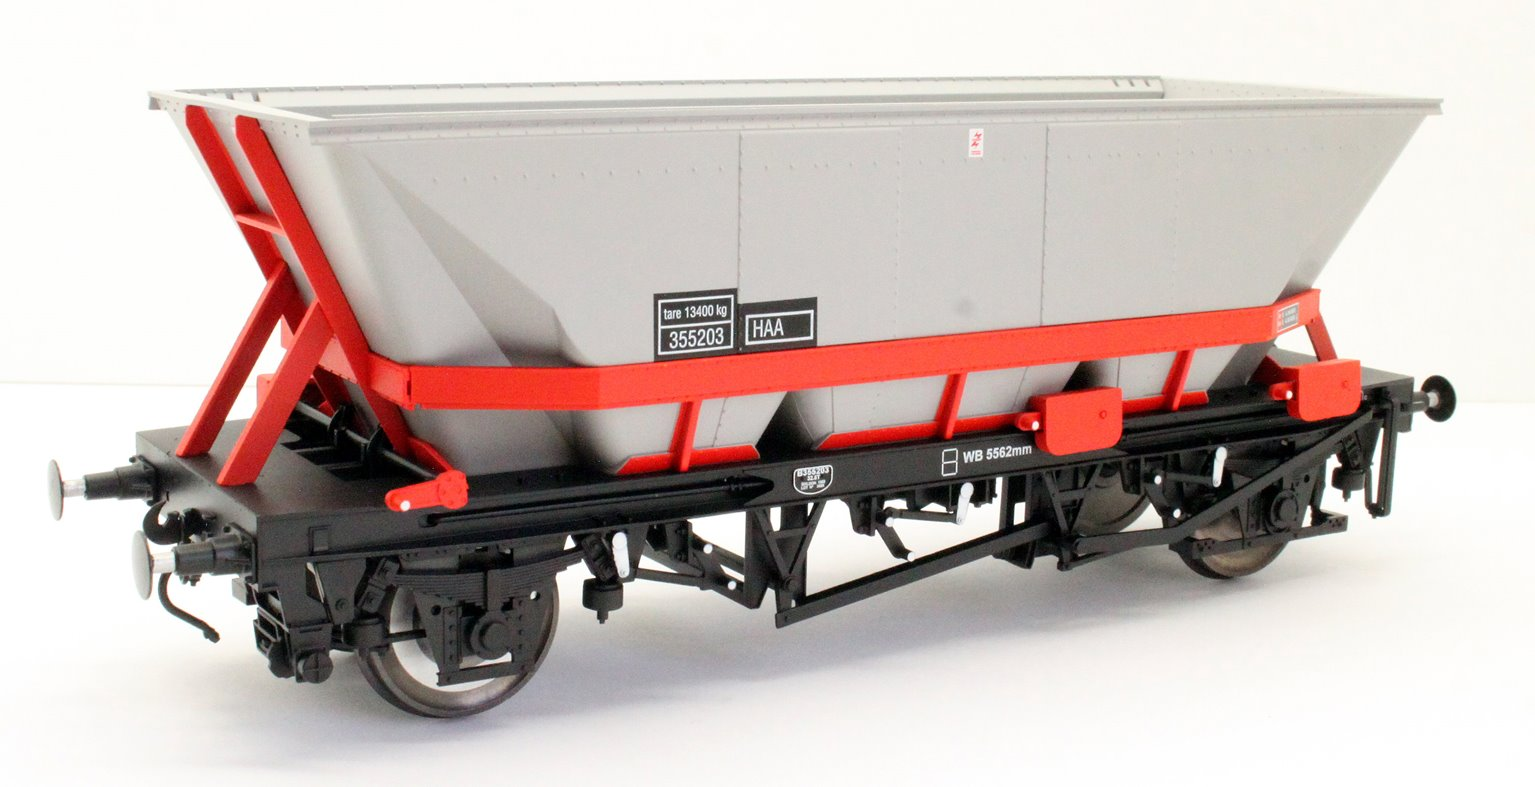 Dapol 7F-048-002 MGR HA A Coal Wagon (red cradle) #355203